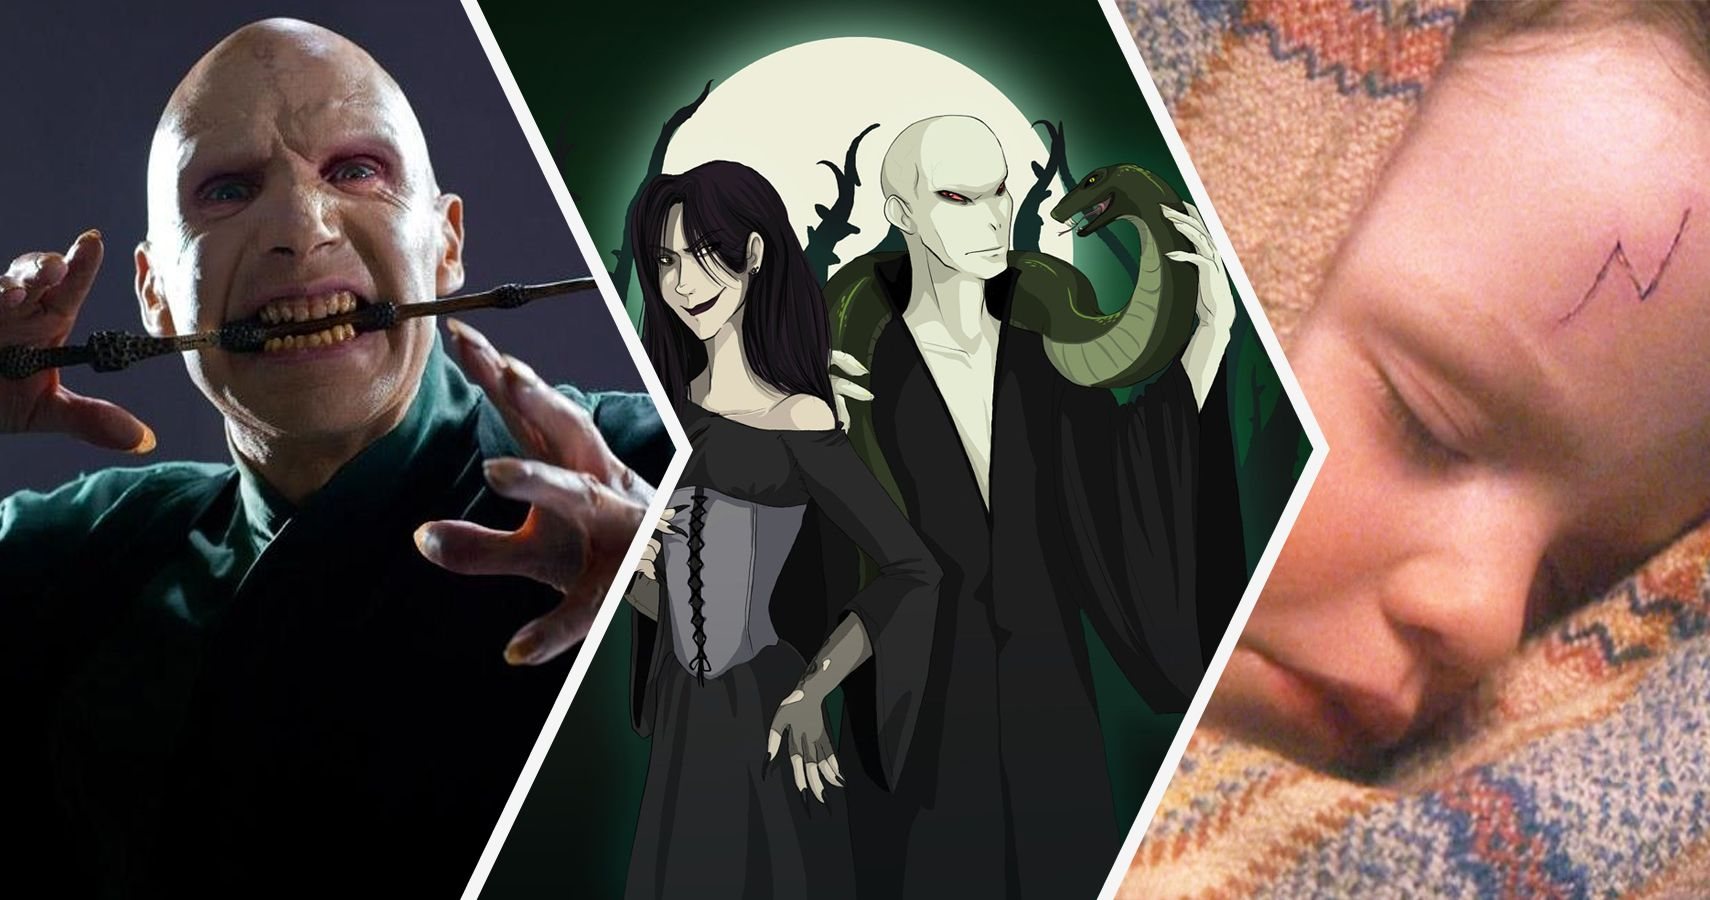 Lord Voldemort: 20 Things Fans Get Wrong About The Harry Potter Villain